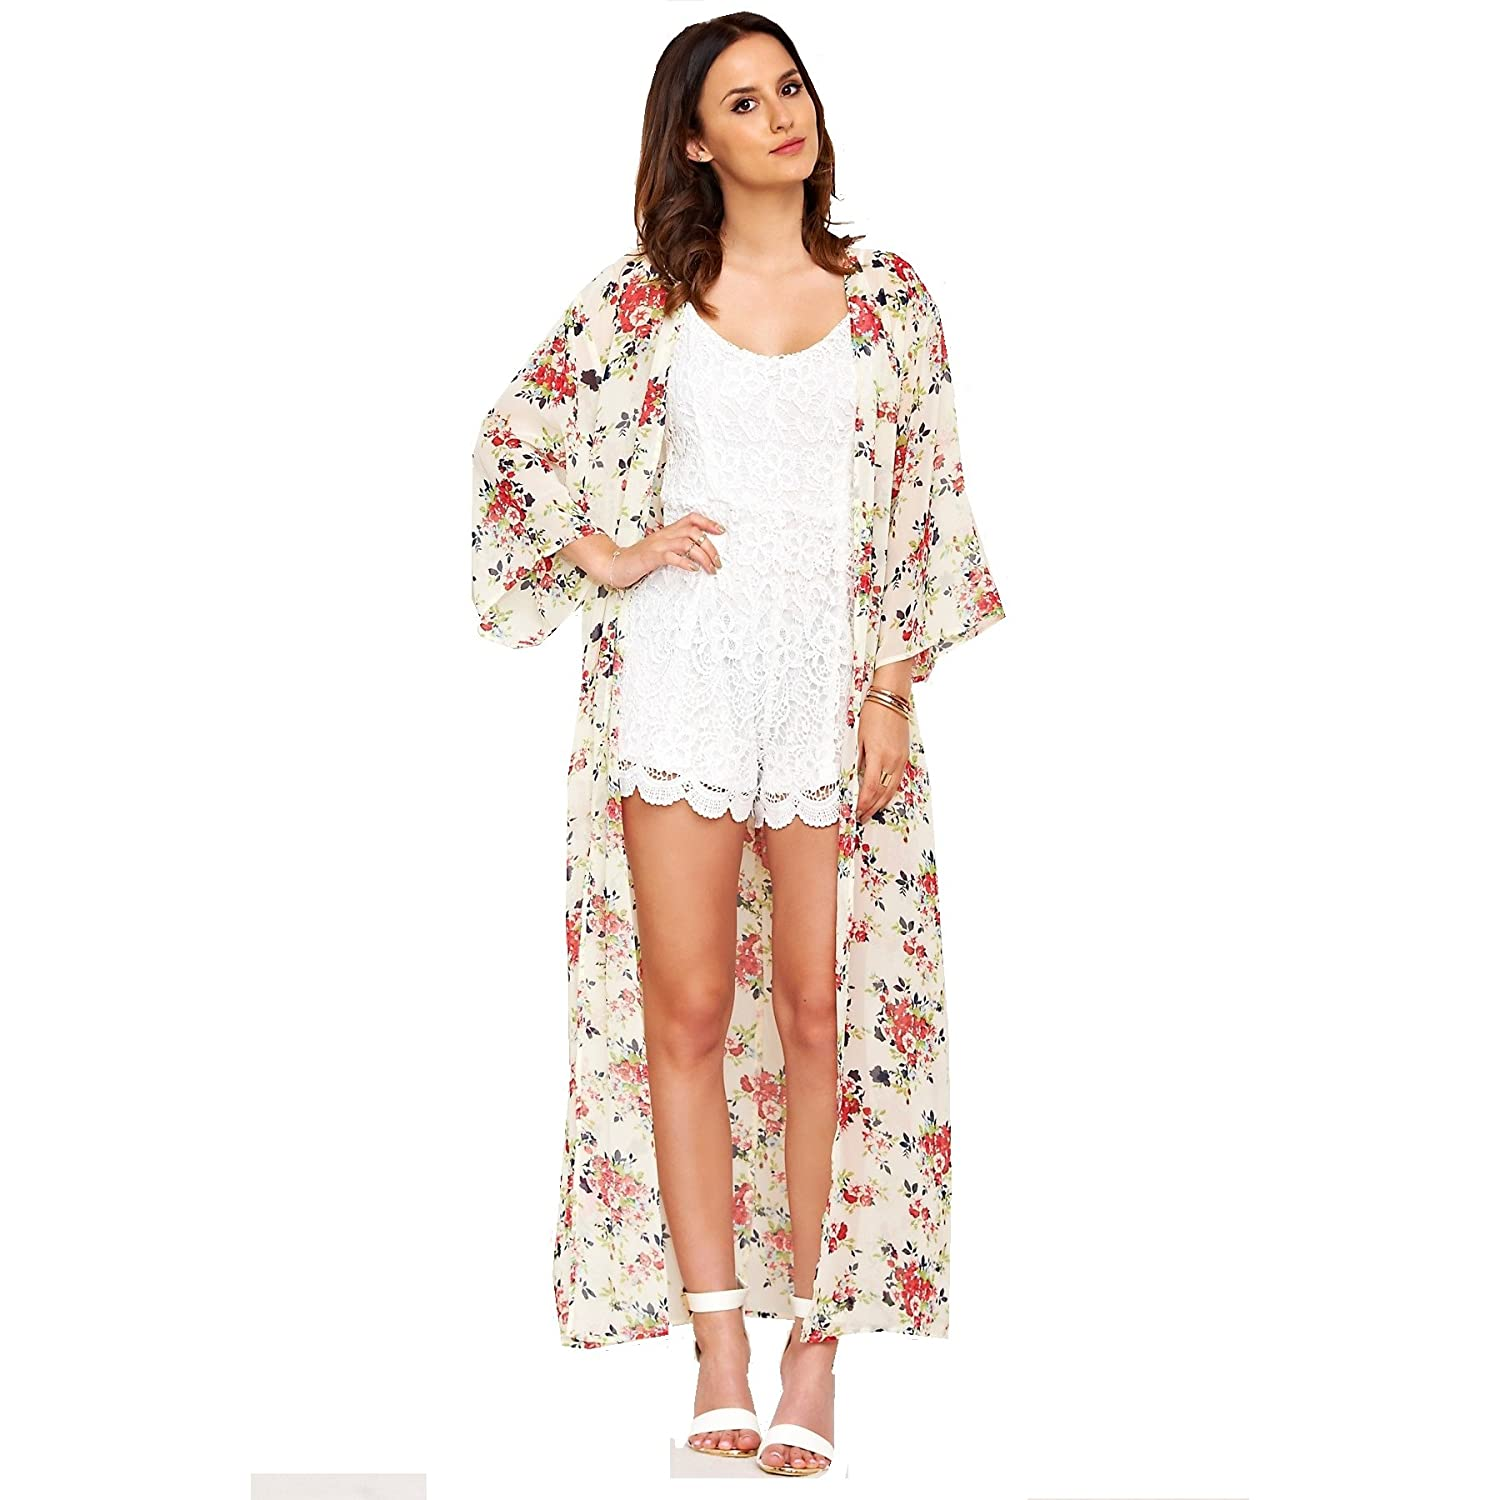 b0df35ff8 Celebrity Lucy Watson Floral Print Long Chiffon Kimono US Size 4-12 at  Amazon Women's Clothing store: